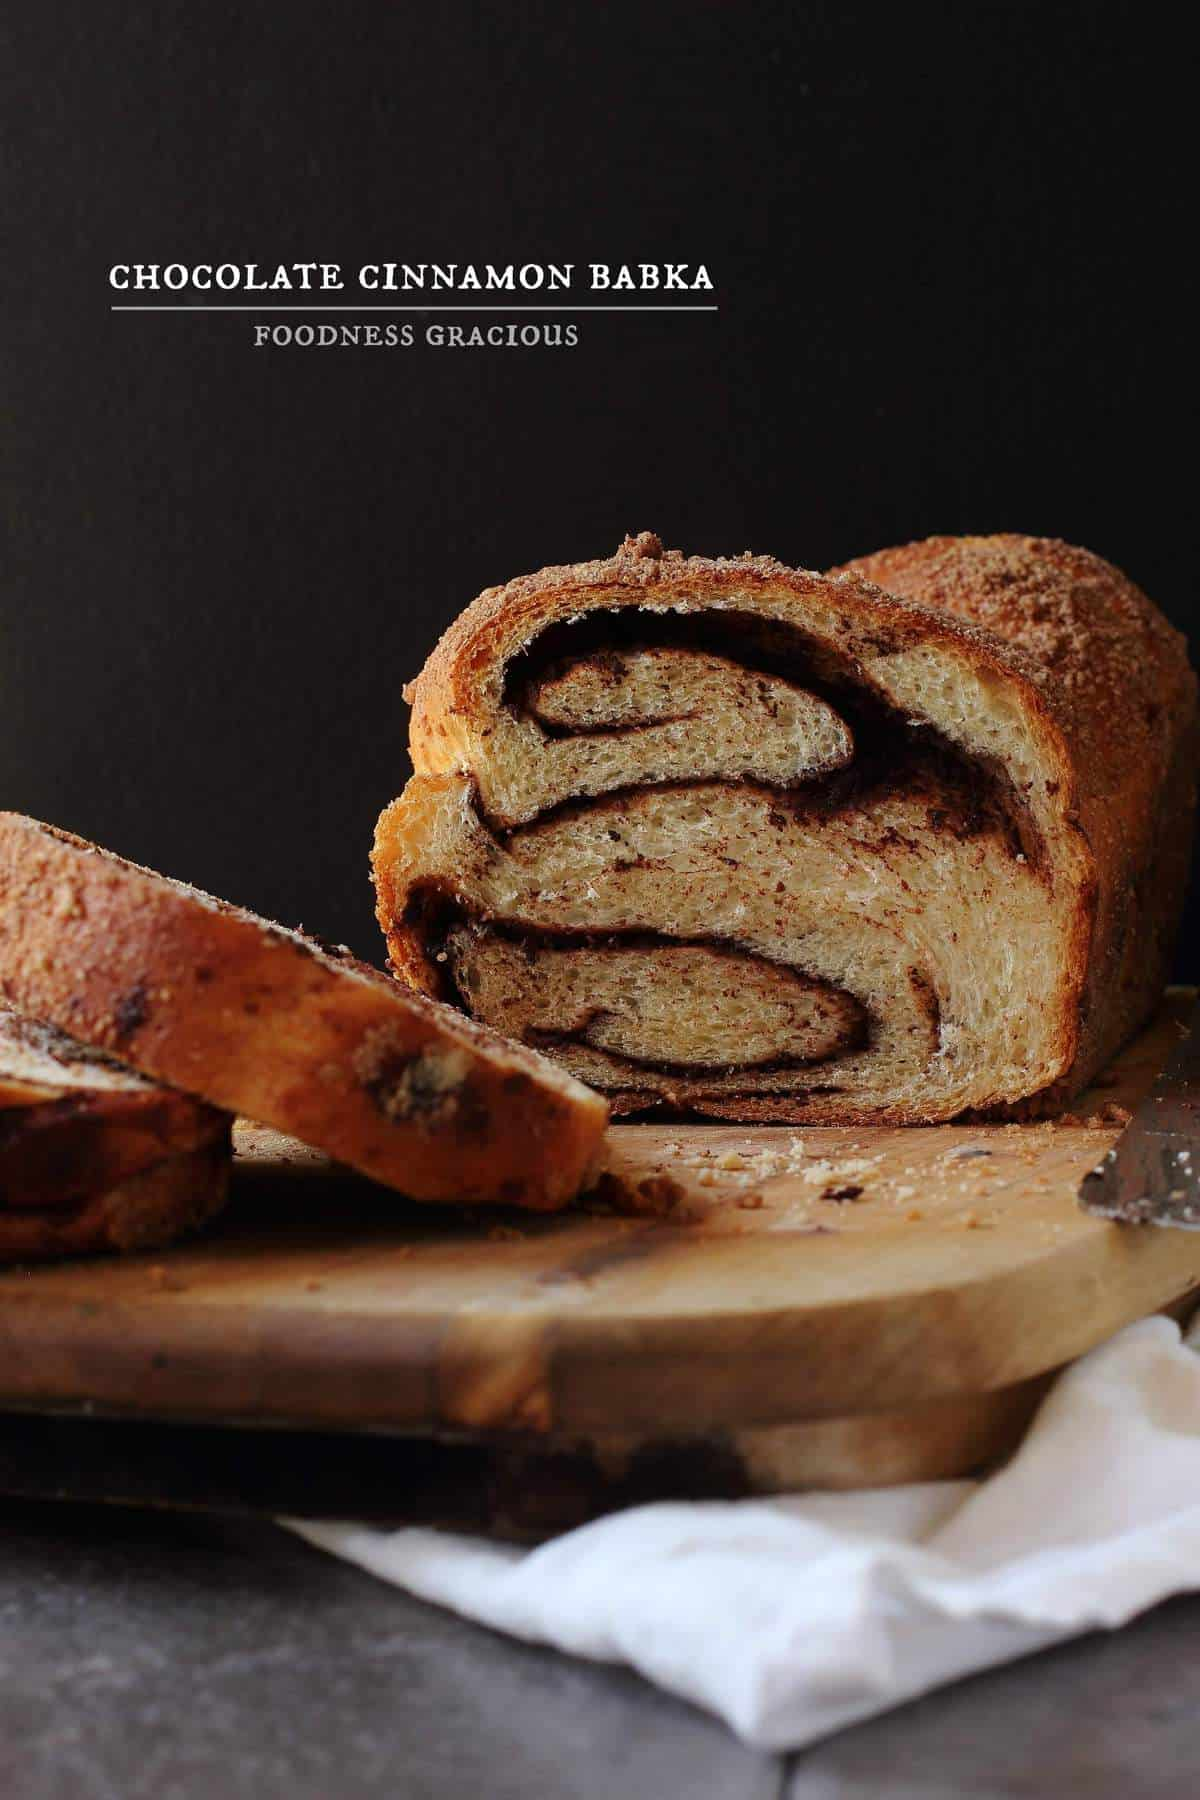 ve tried chocolate babka from new york and it